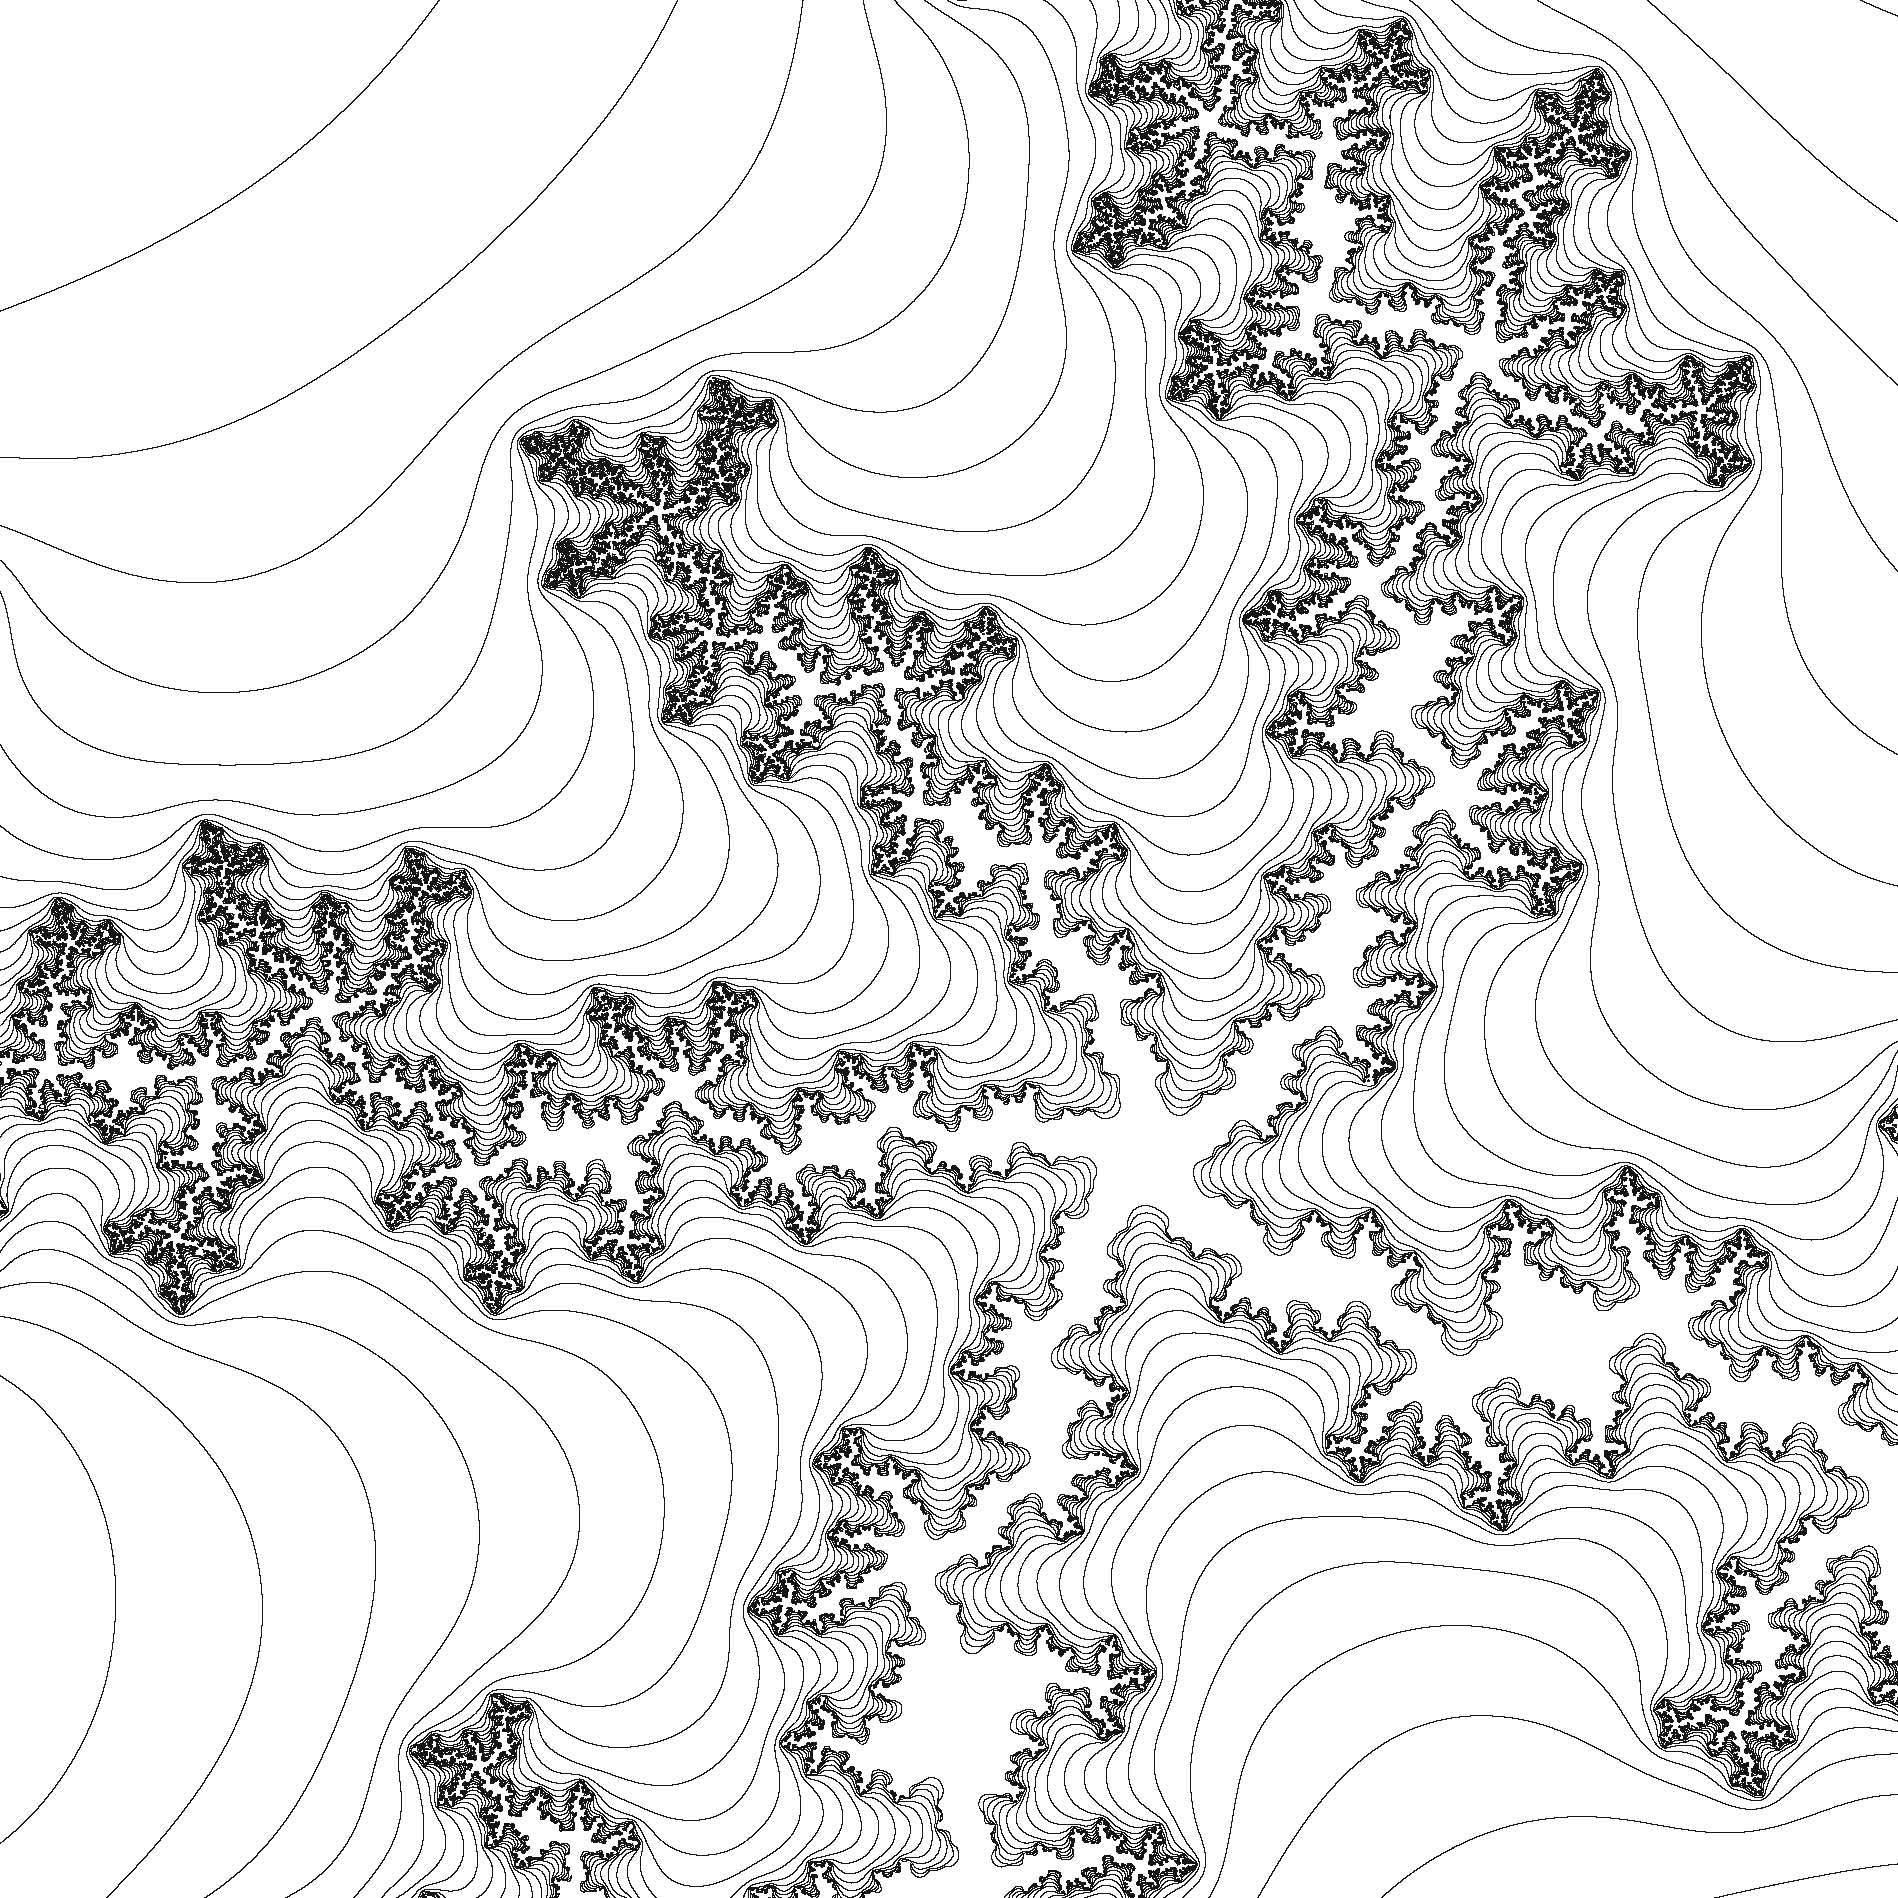 Coloring By Numbers, Mathematically